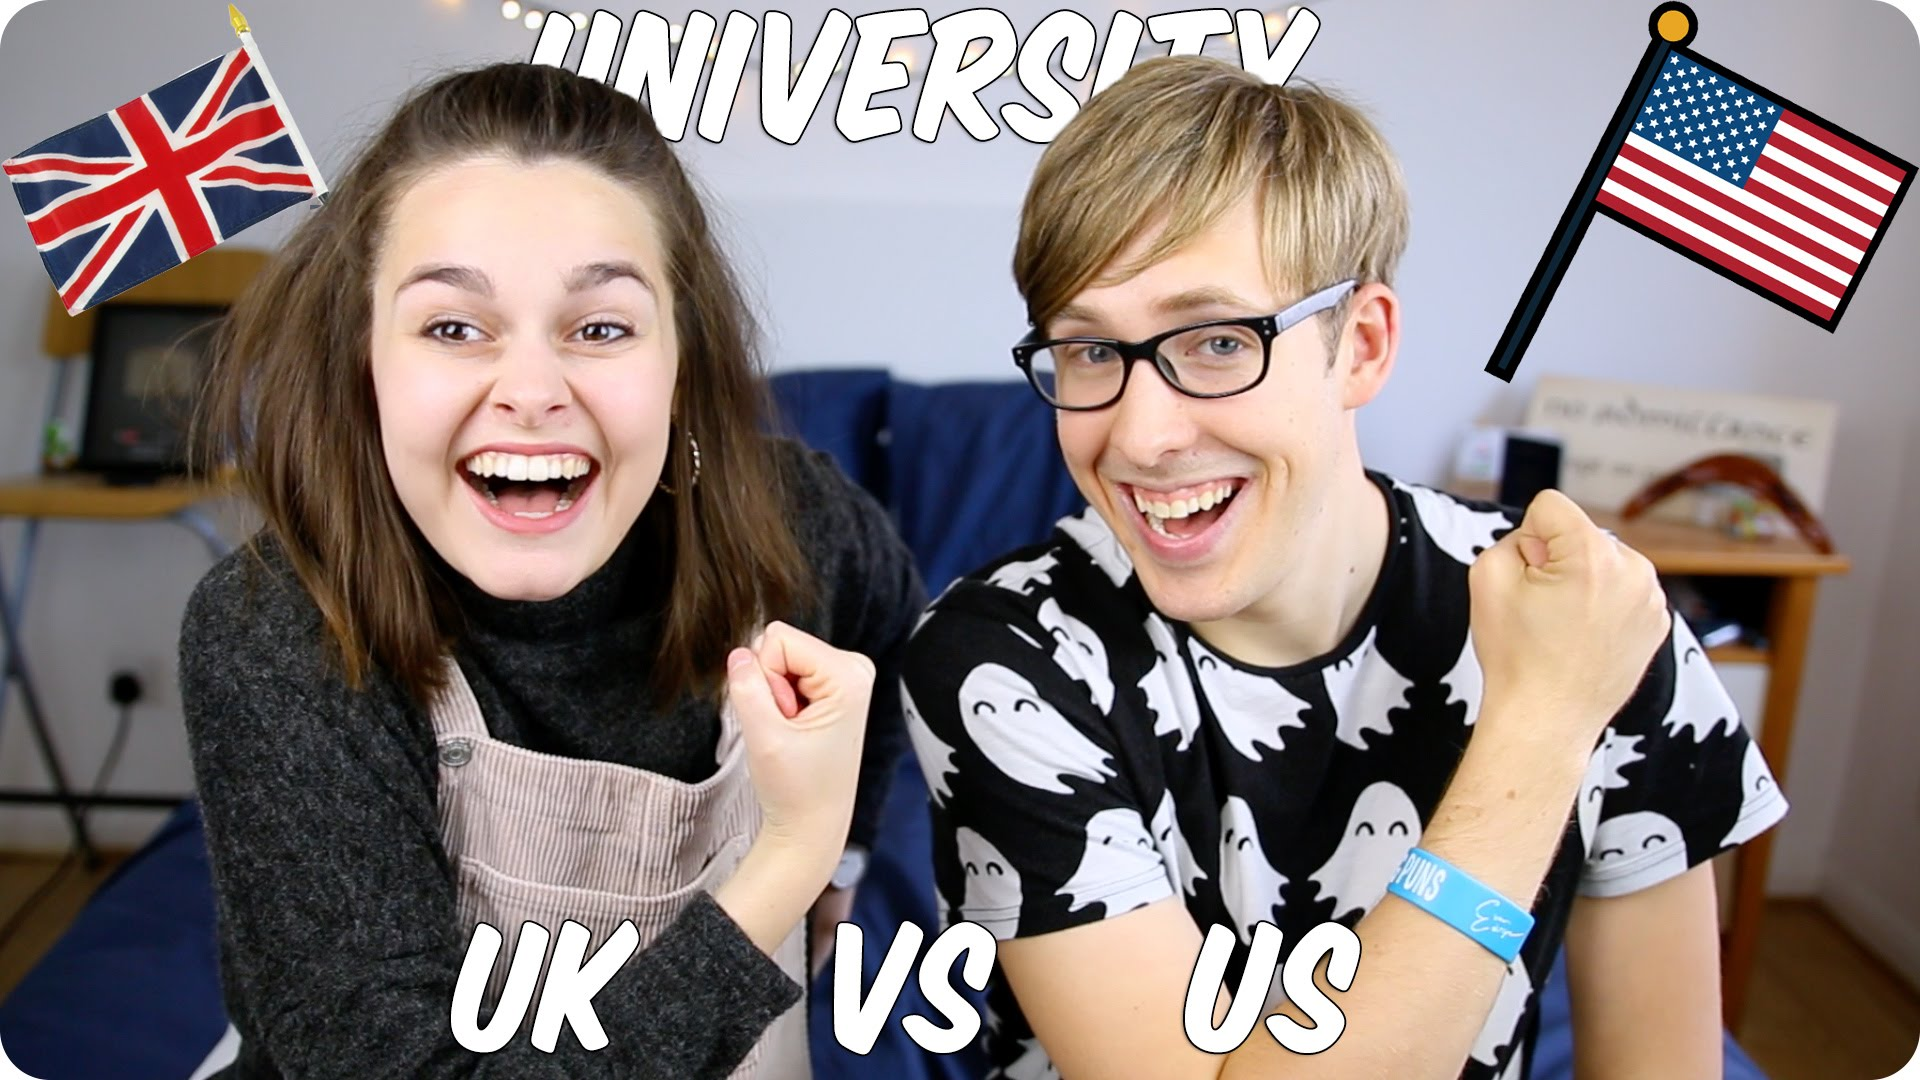 How different are American universities from the British universities?